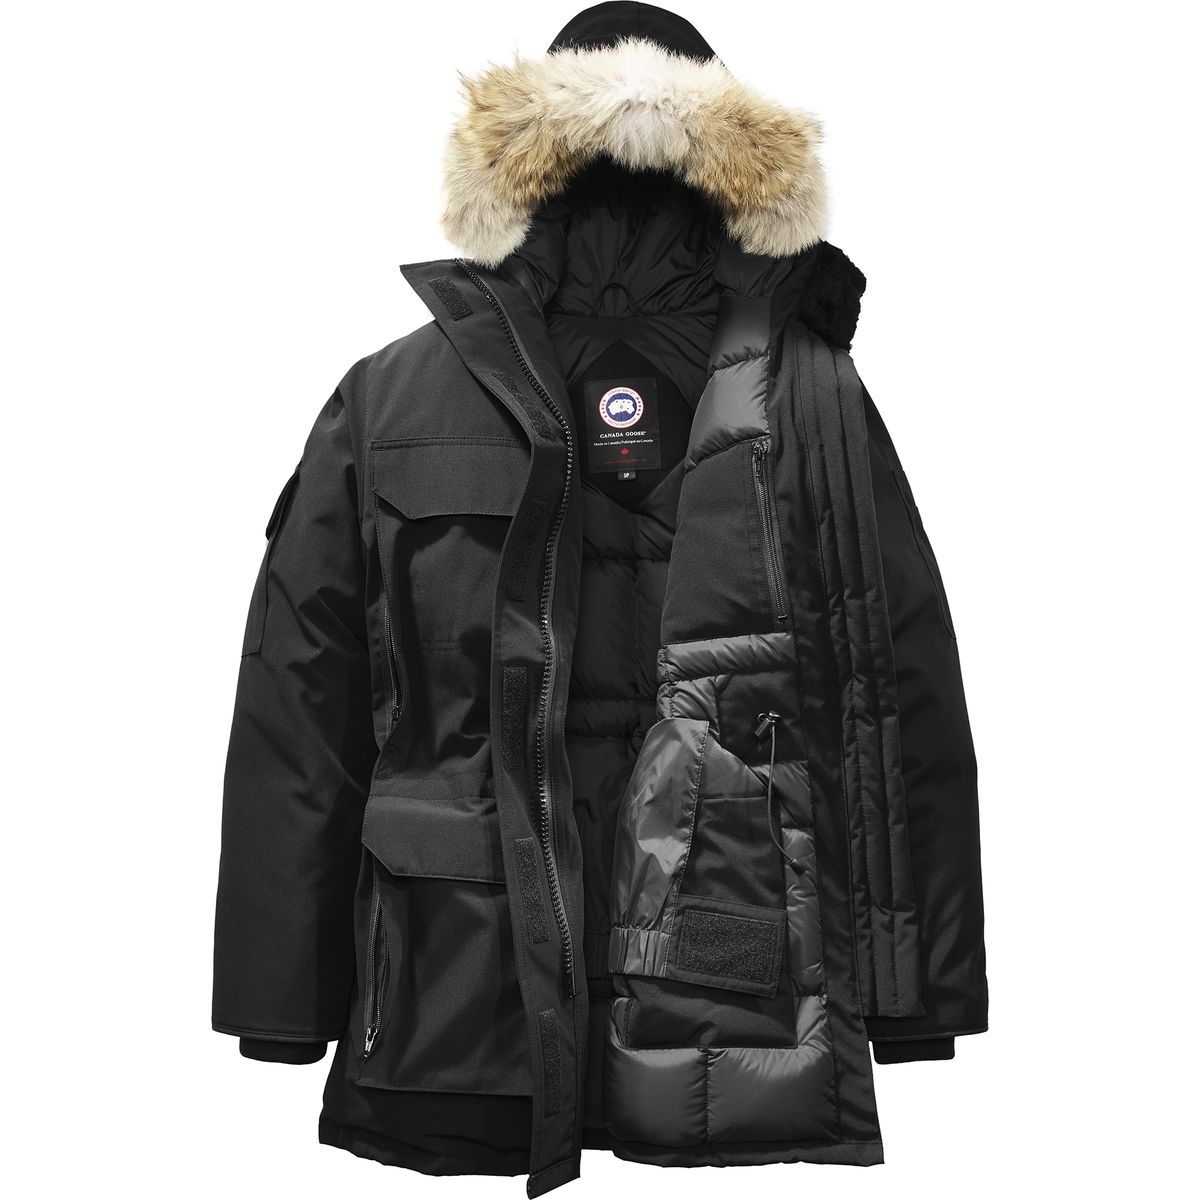 Best Winter Jacket For Extreme Cold Jackets Review